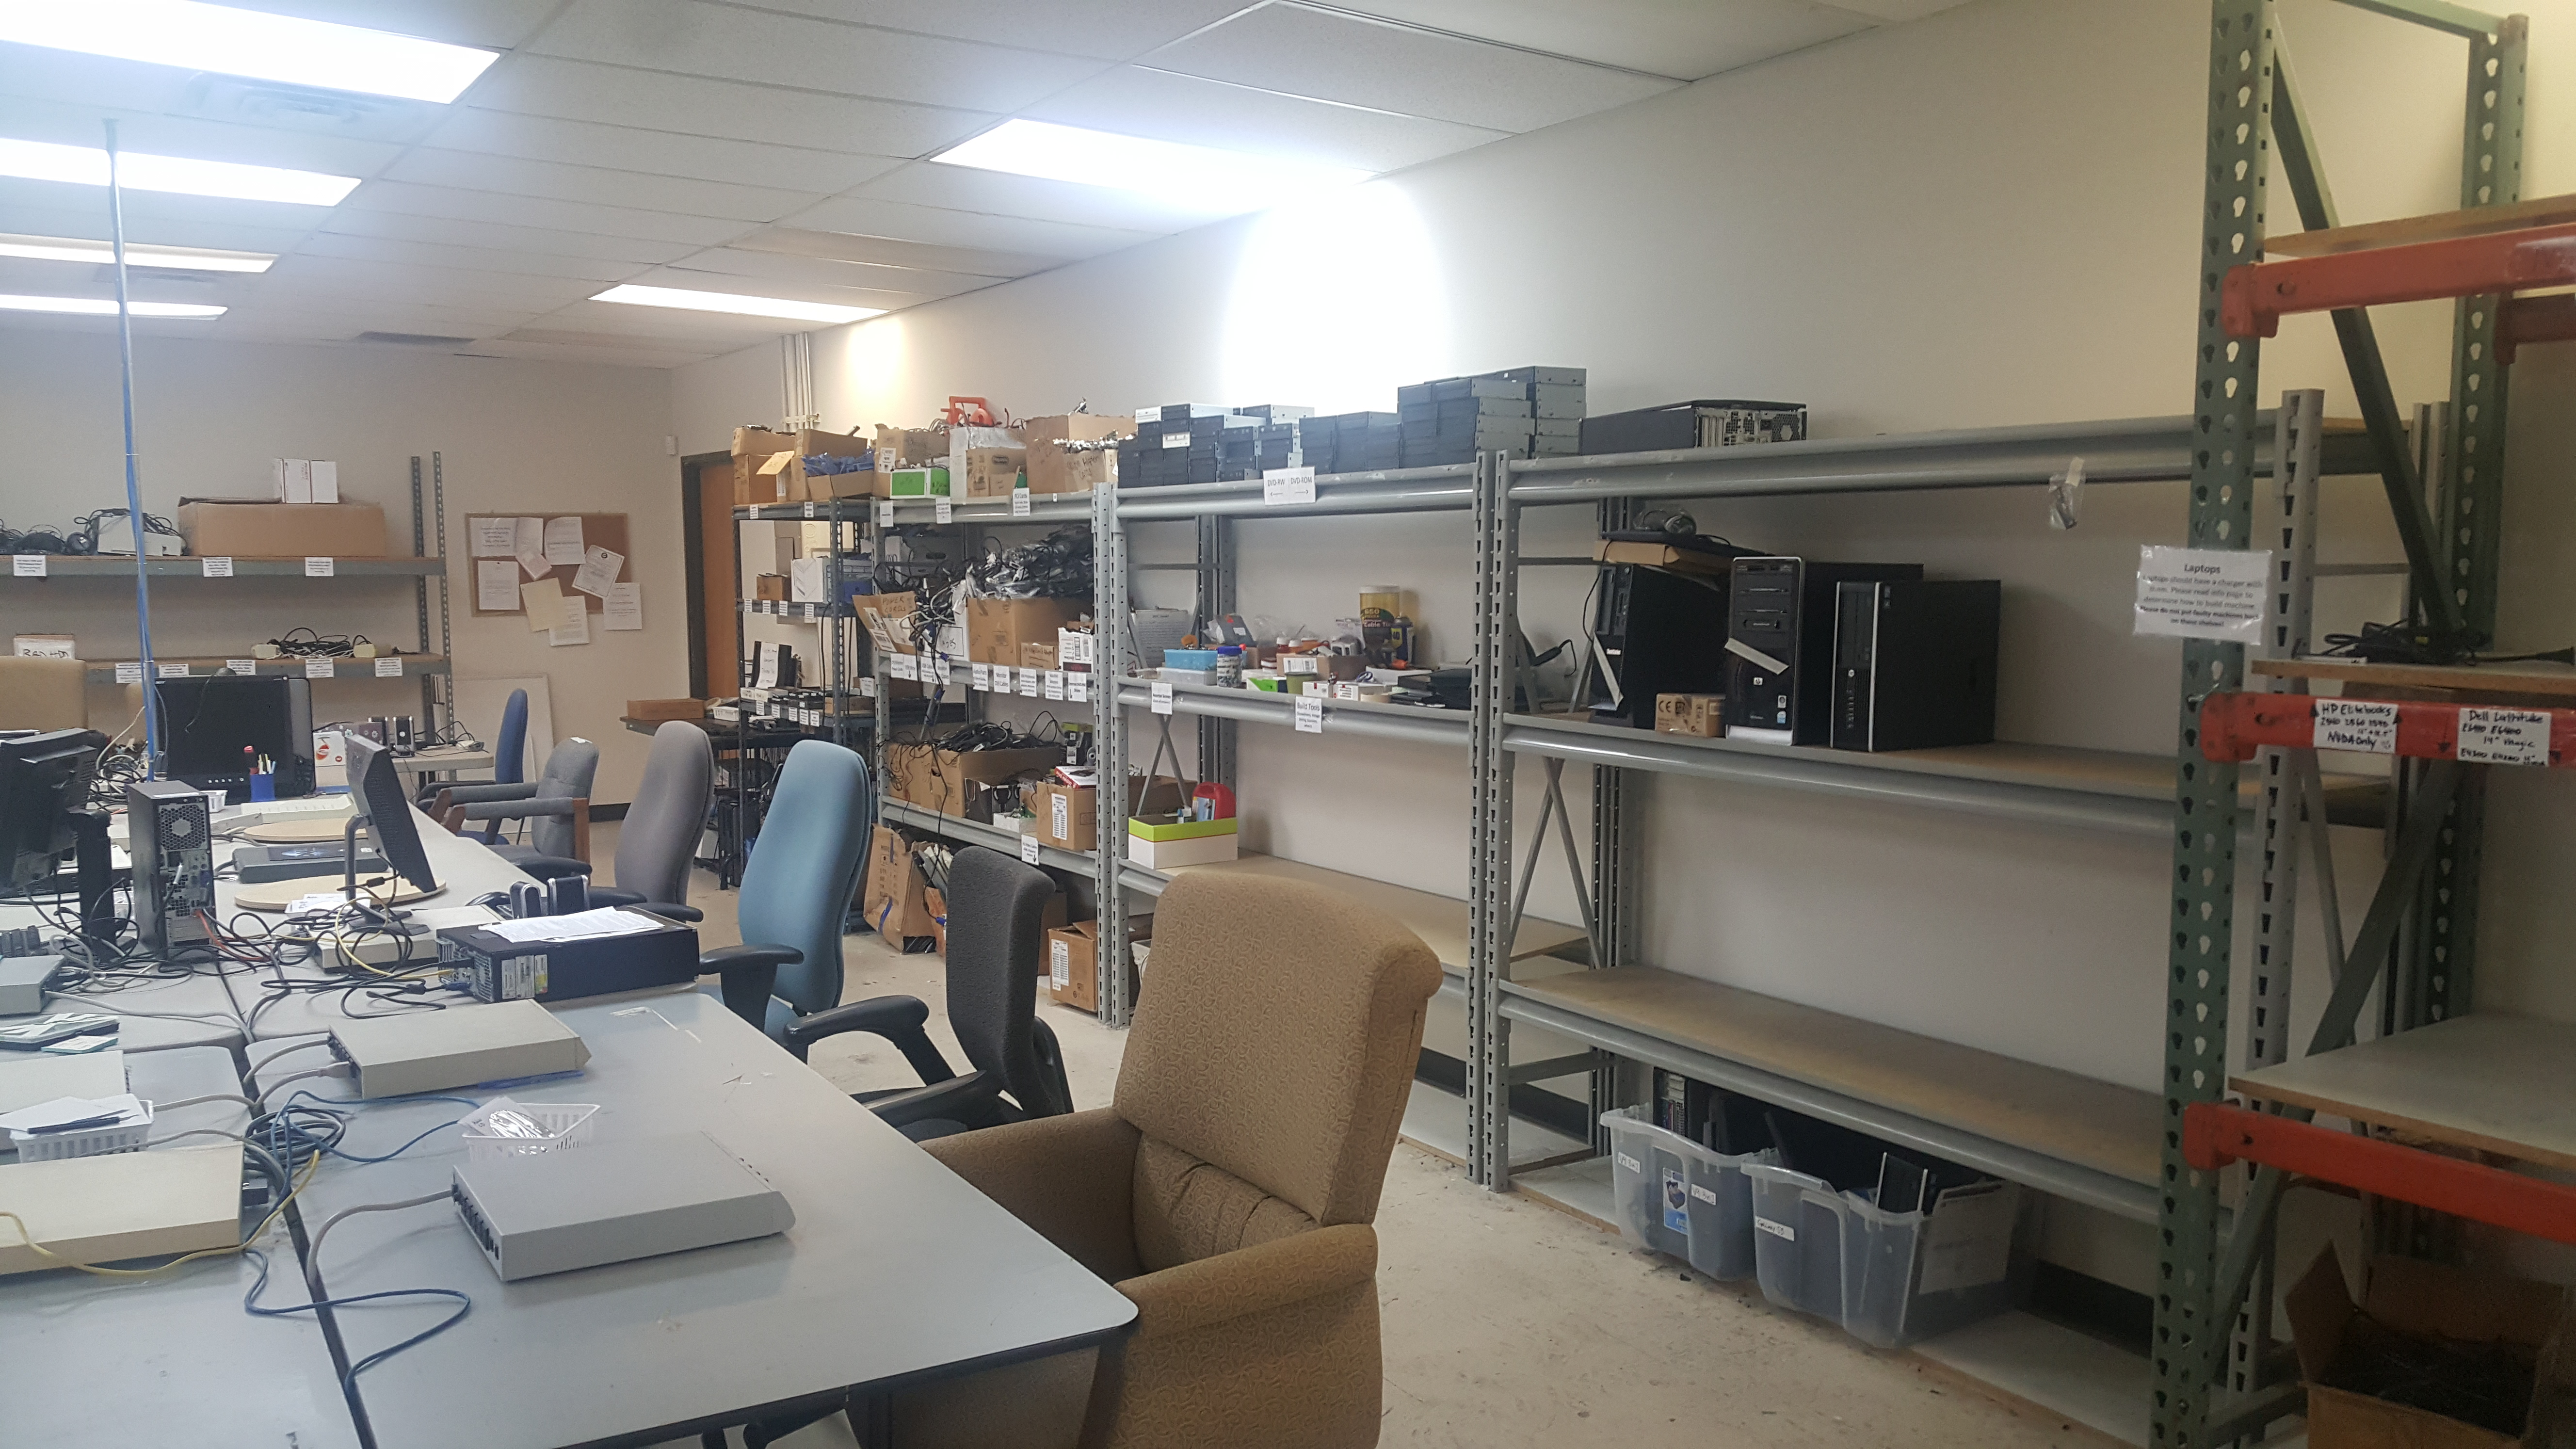 The storage shelves in the Refurbishing Center in Richardson. These shelves contain all the peripherals that we use to build computers such as mice, keyboards, cables, and parts.